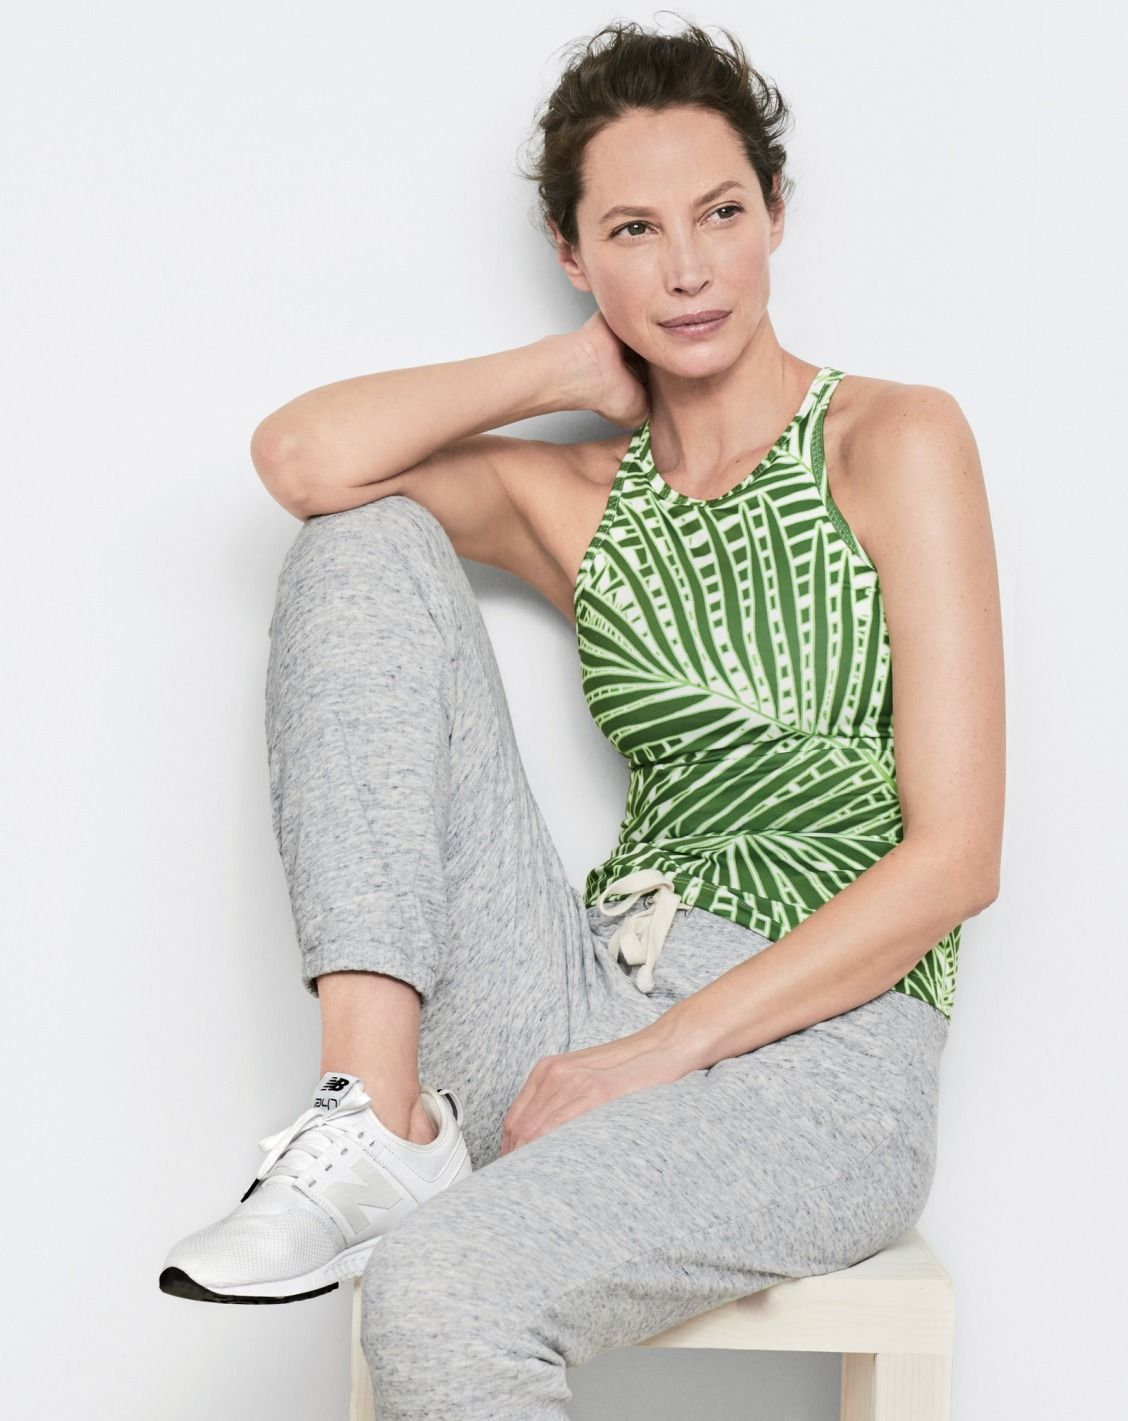 a6b2a39f5da74 New Balance® for J.Crew racerback tank top with built-in sports bra in palm  print